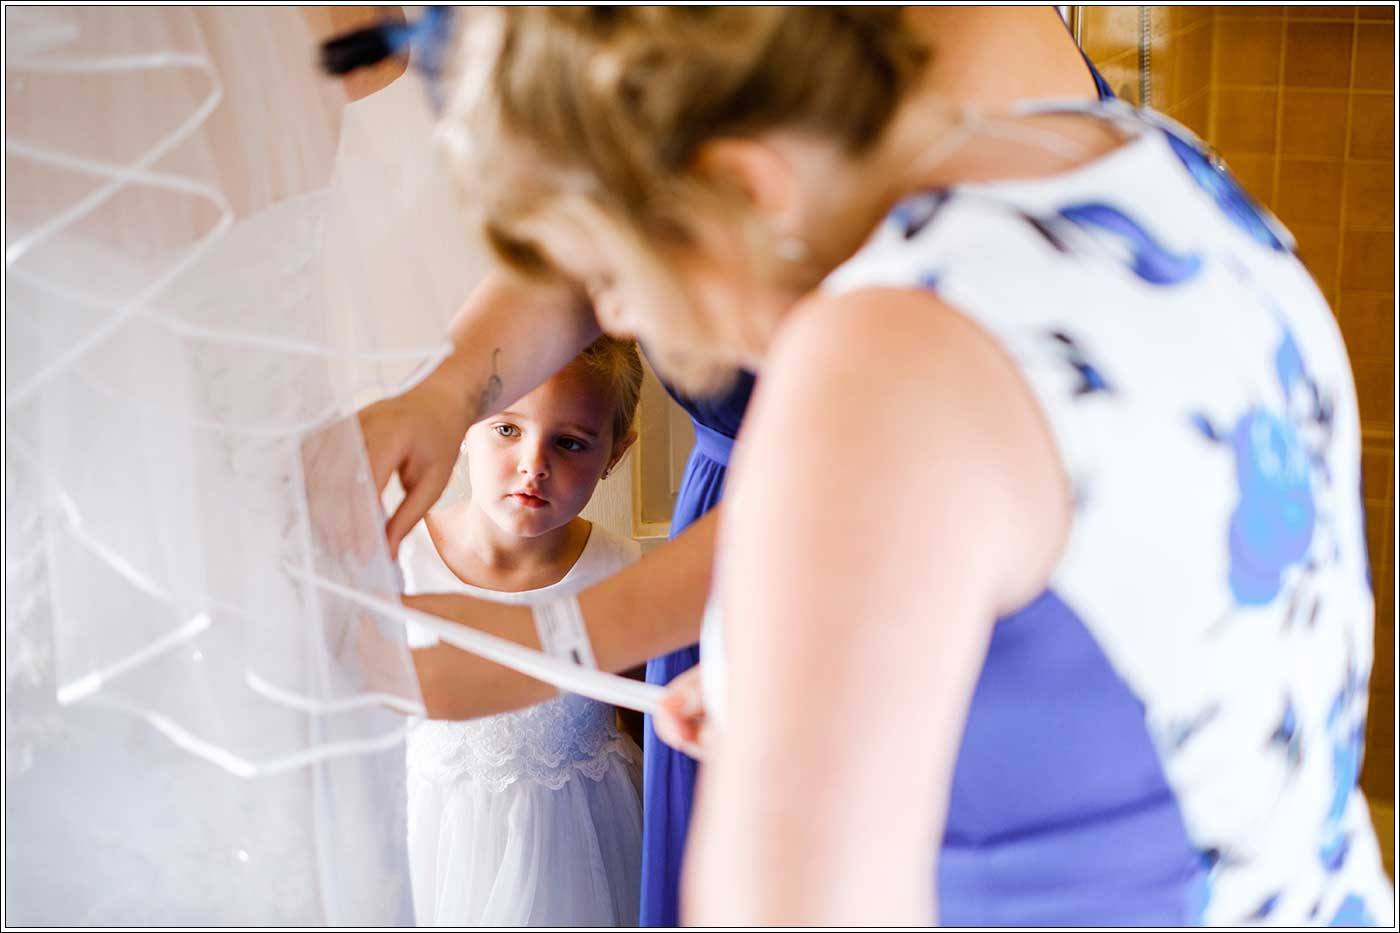 Maid peering at bride's dress being laced up